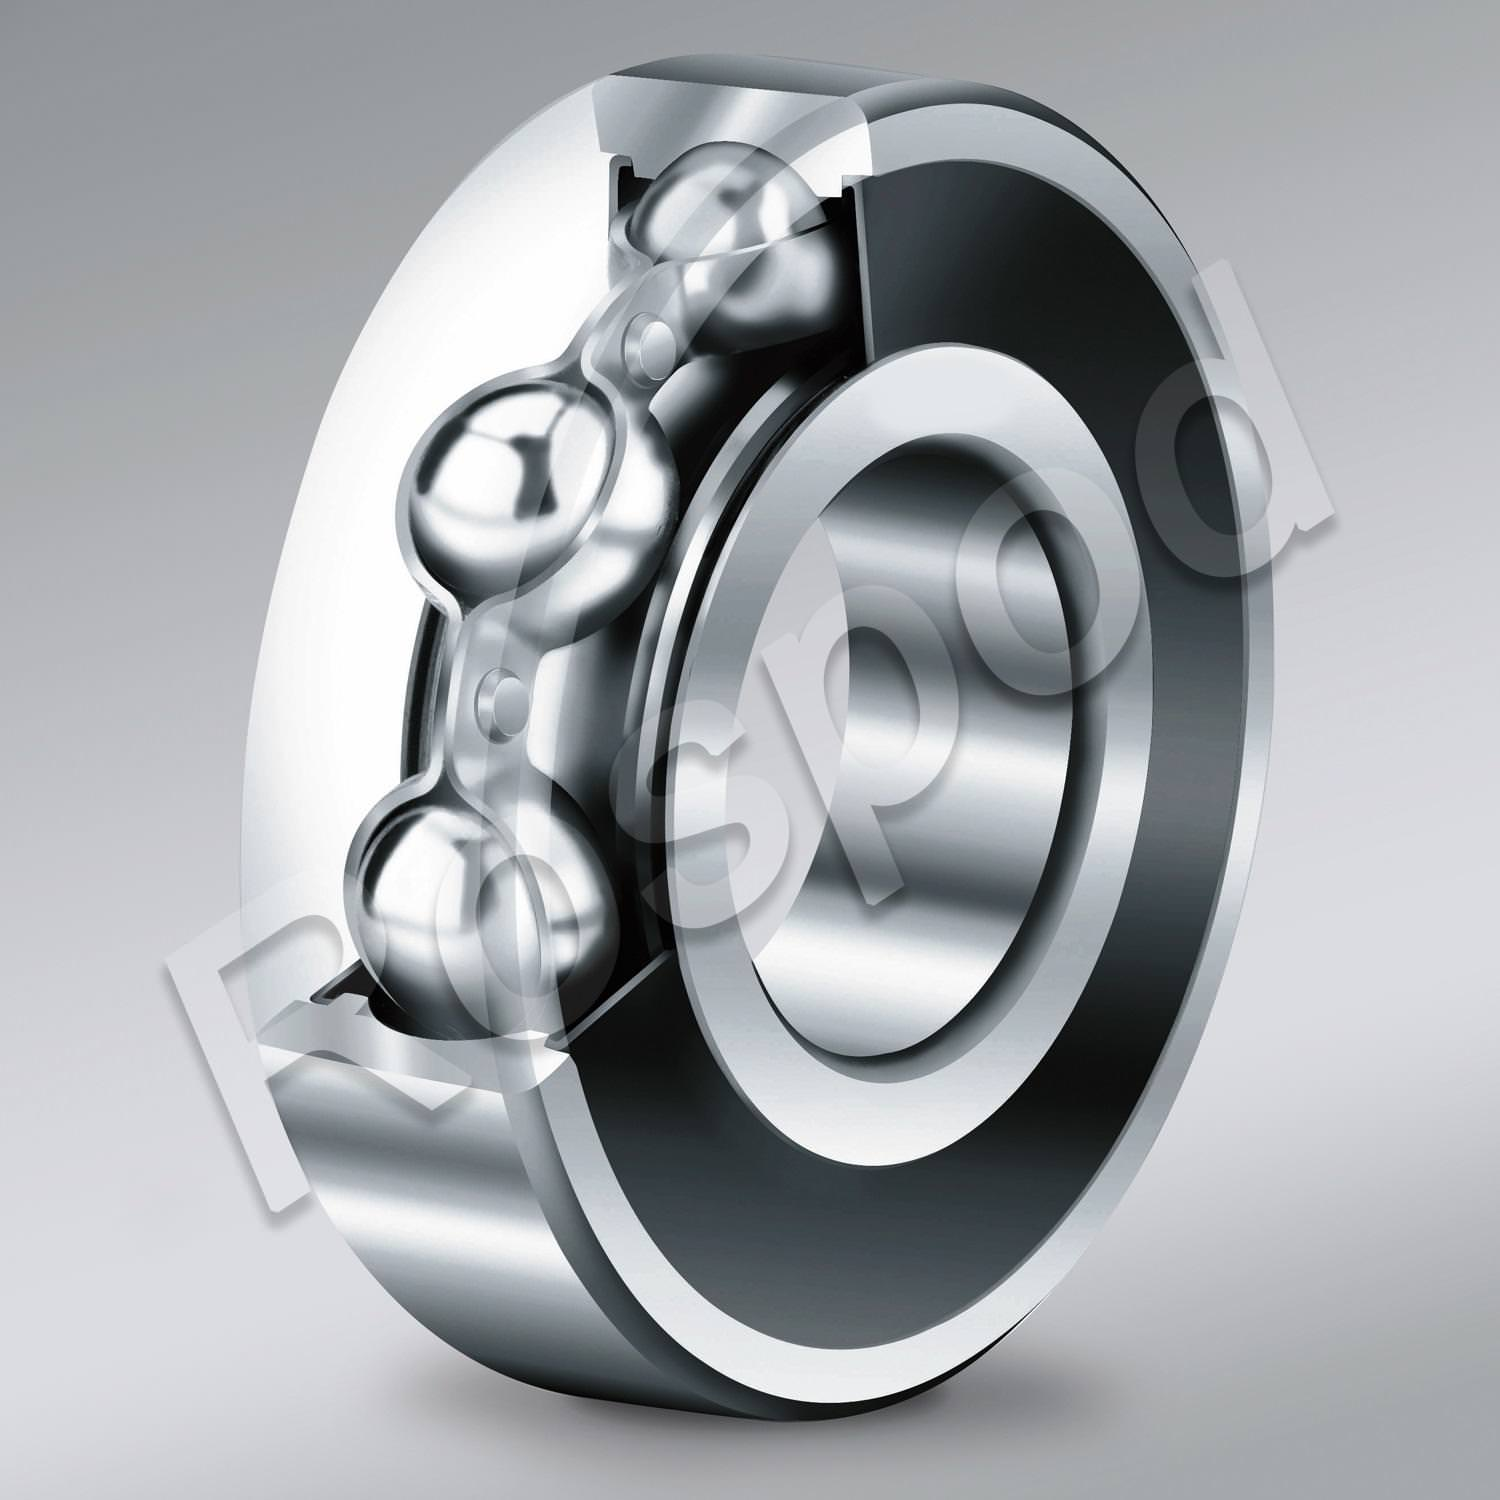 nsk343_improved_ball_bearing_efficiency_pic1